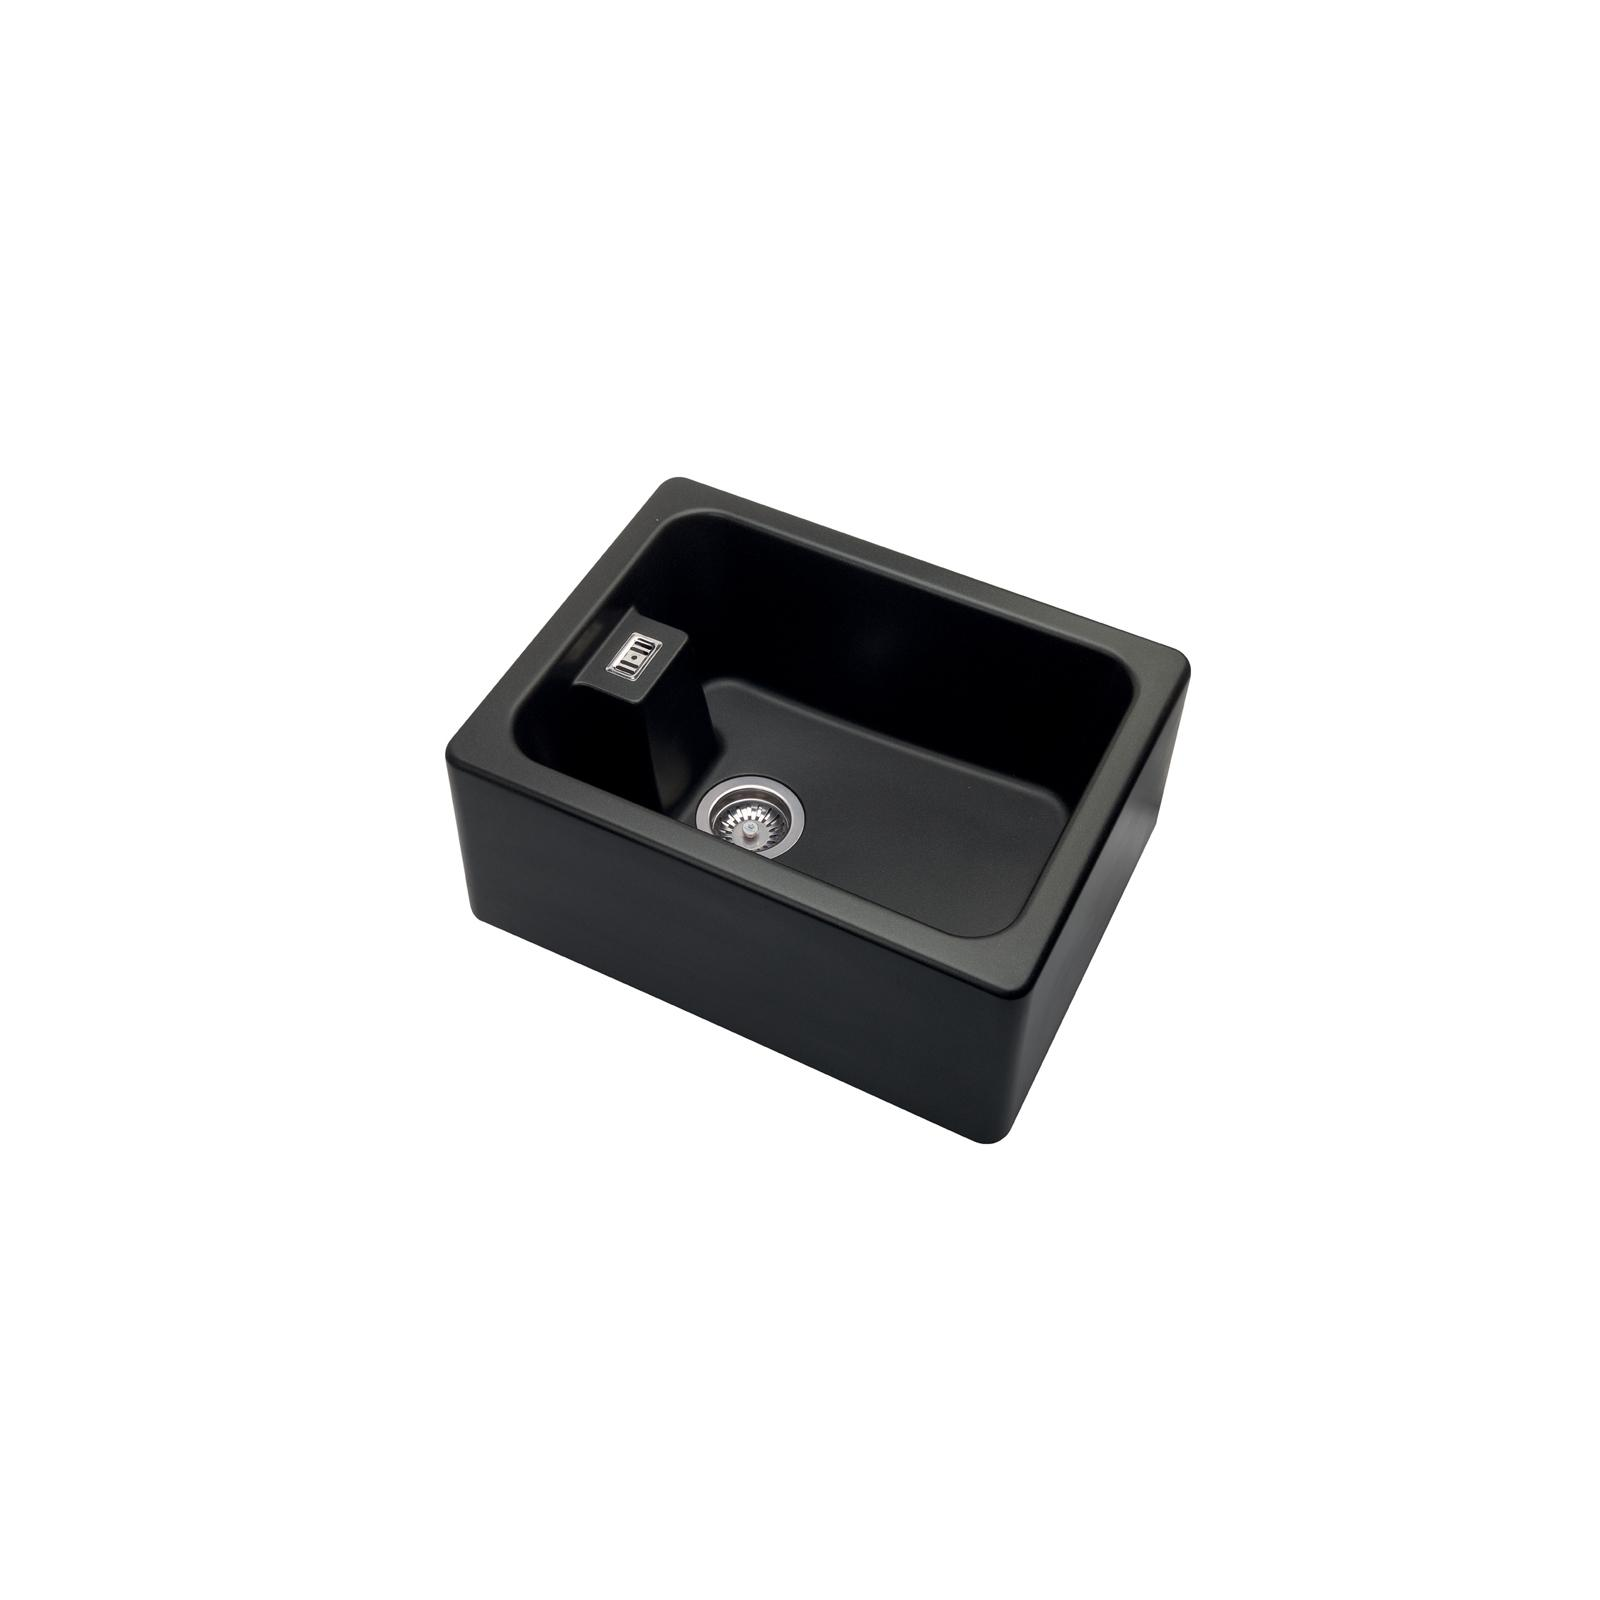 High-quality sink Clovis granit black - one bowl